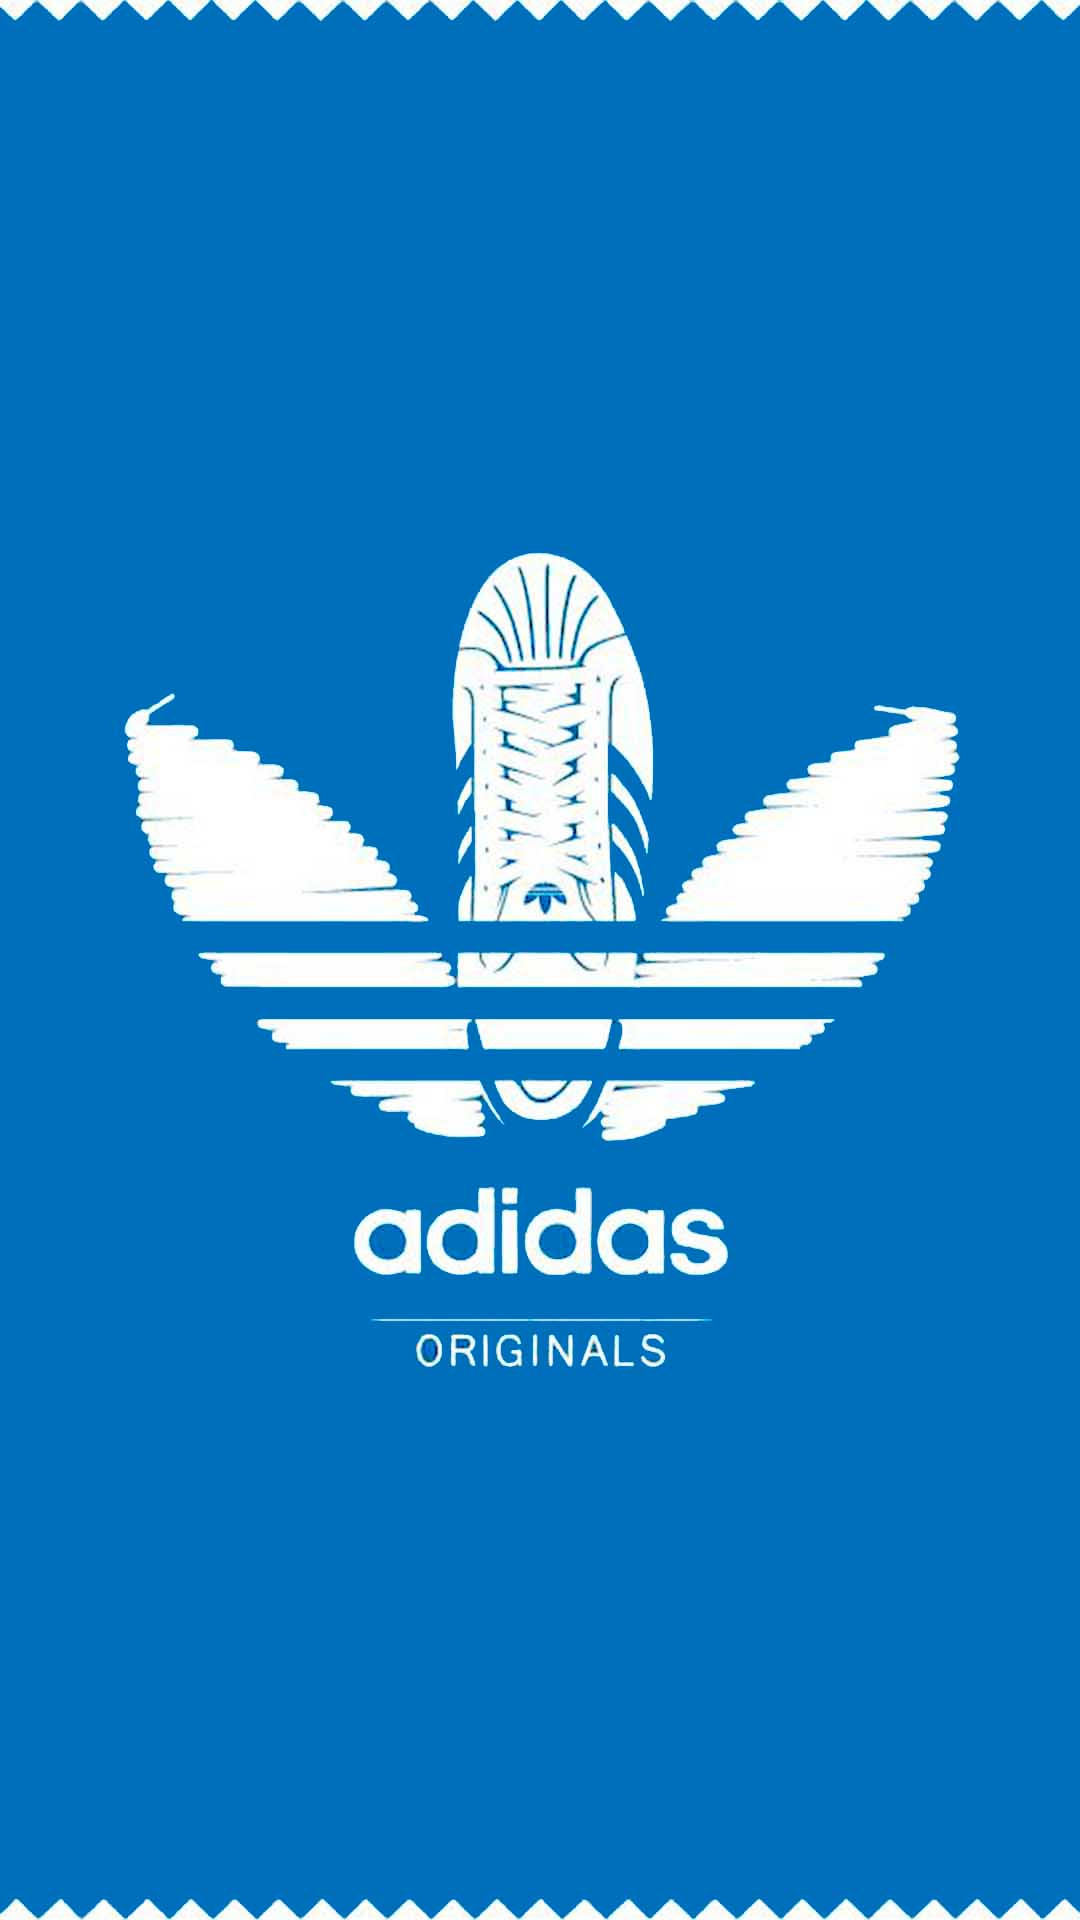 iPhone wallpaper adidas originals 3Wallpapers : notre sélection de fonds d'écran du 19/04/2018